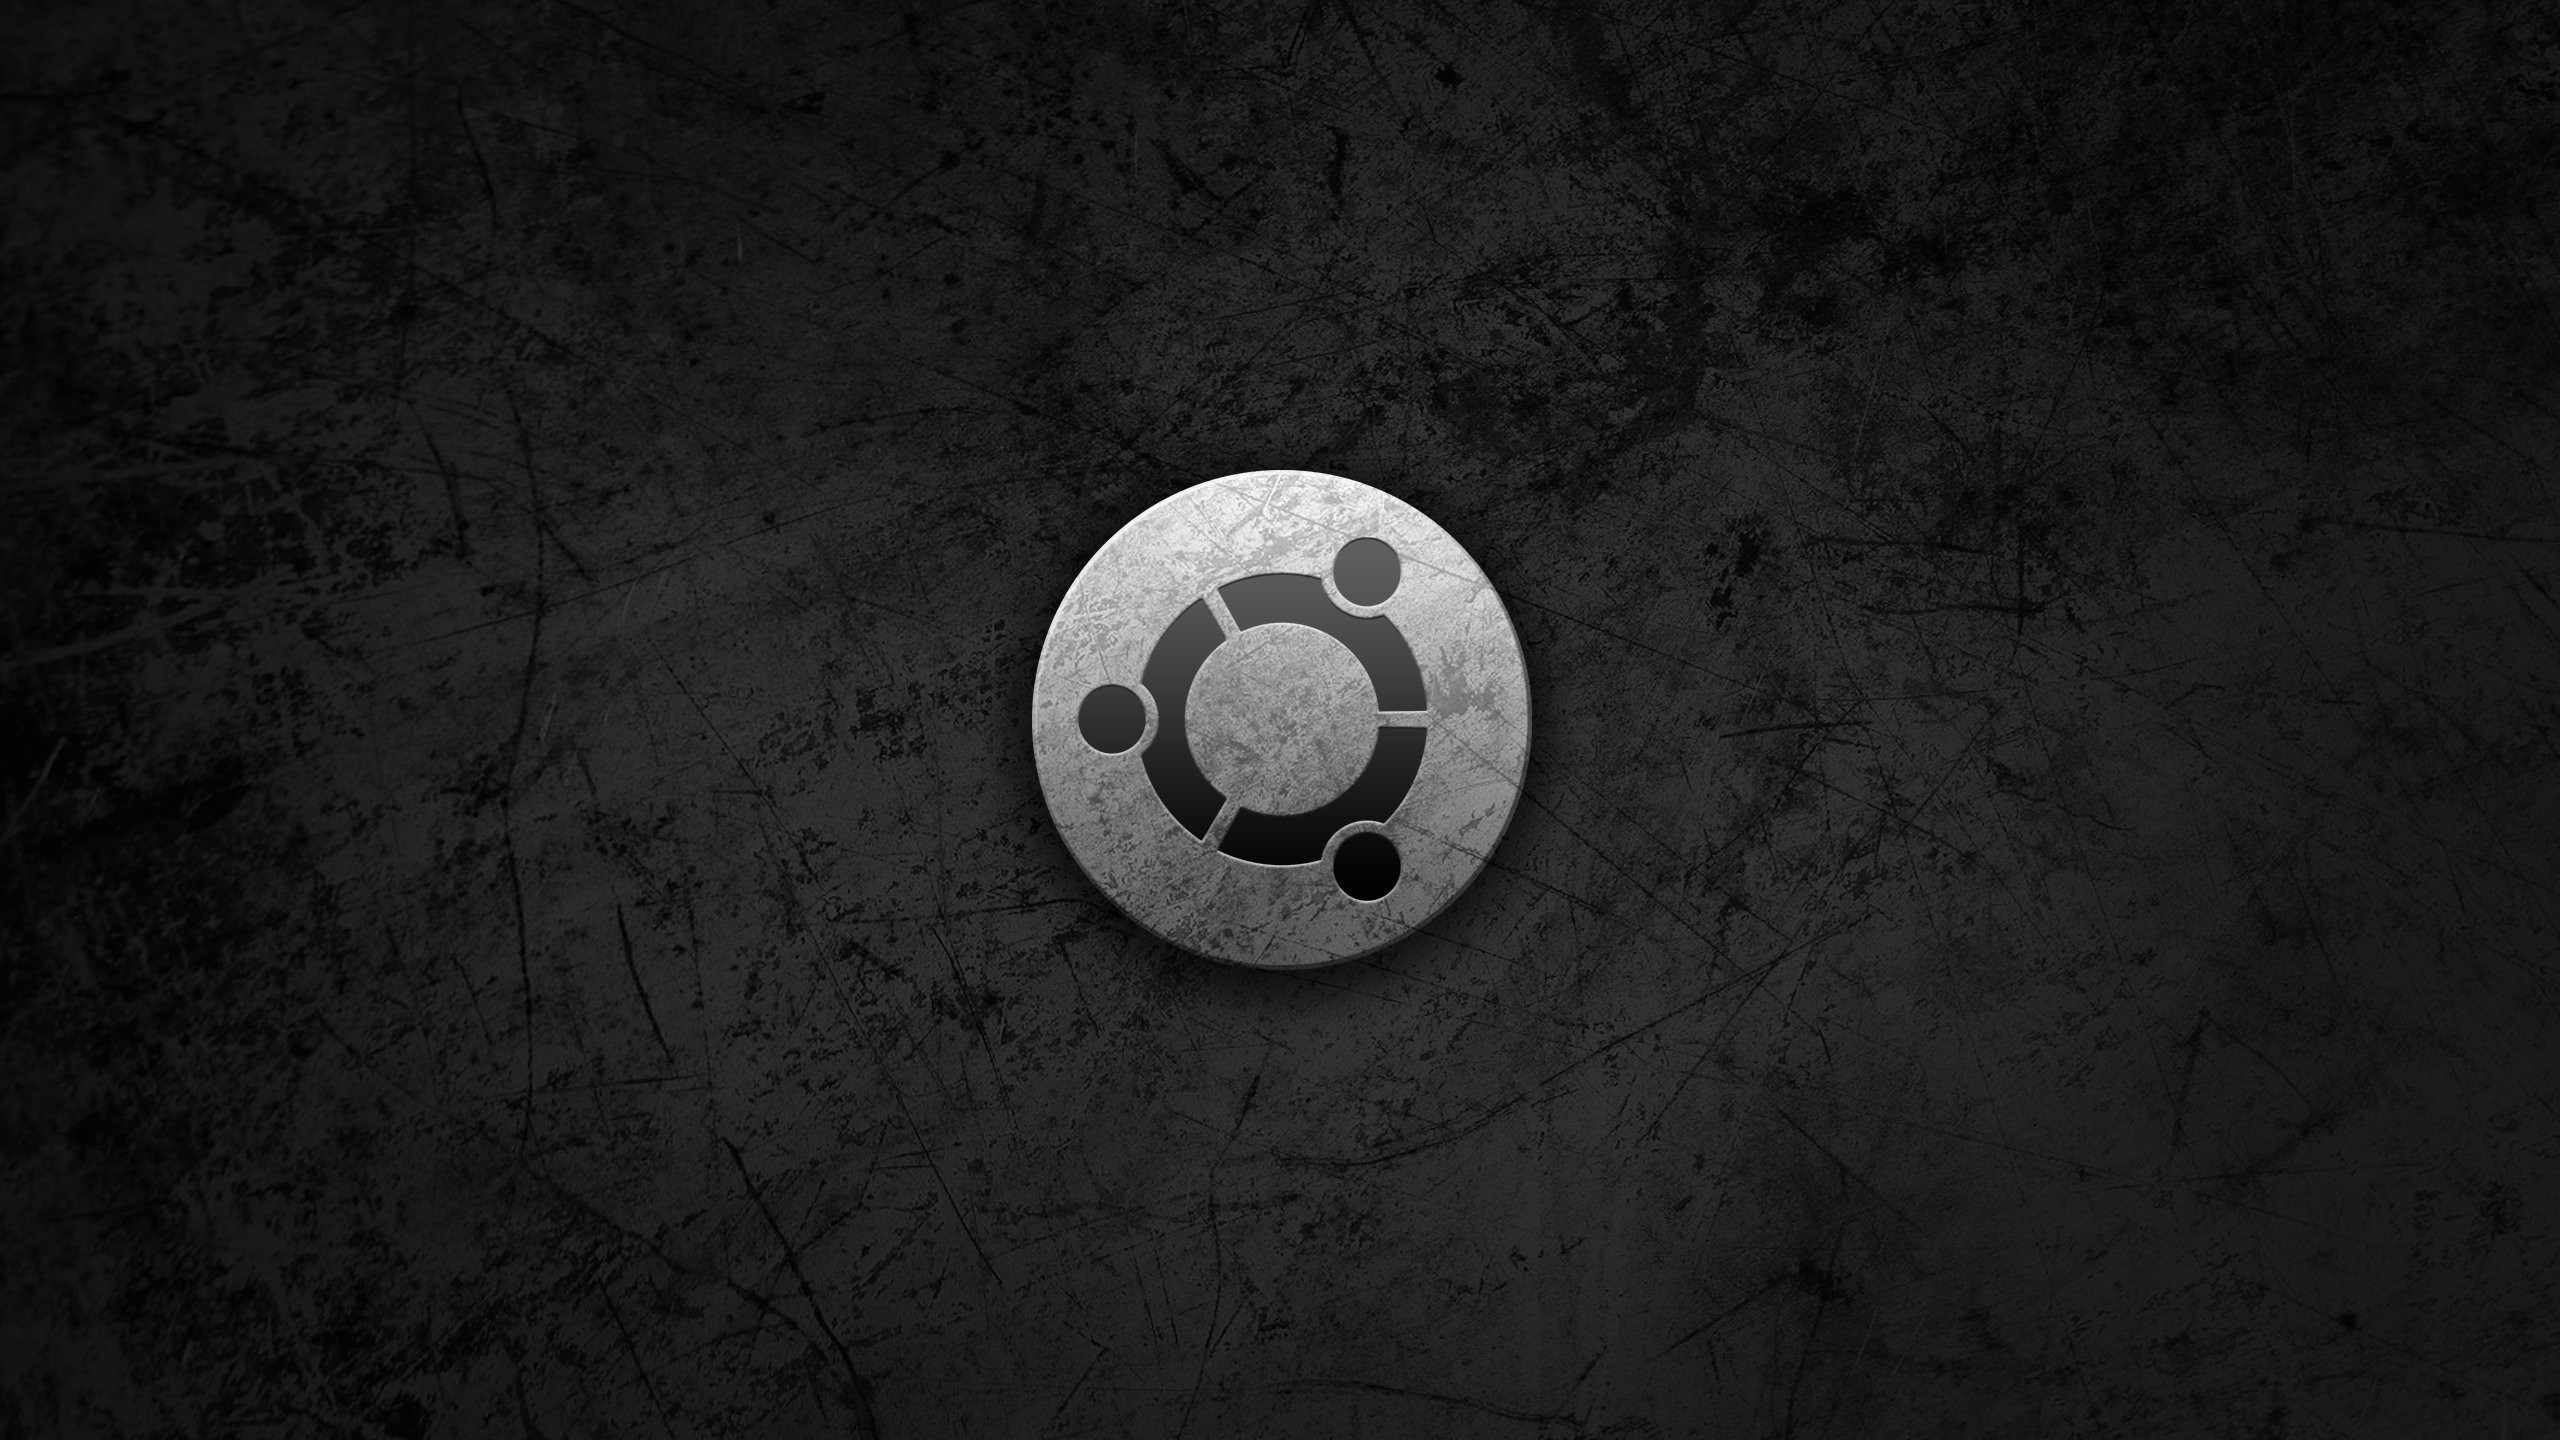 2560x1440 Preview wallpaper ubuntu, gray, black, circle, logo, symbol